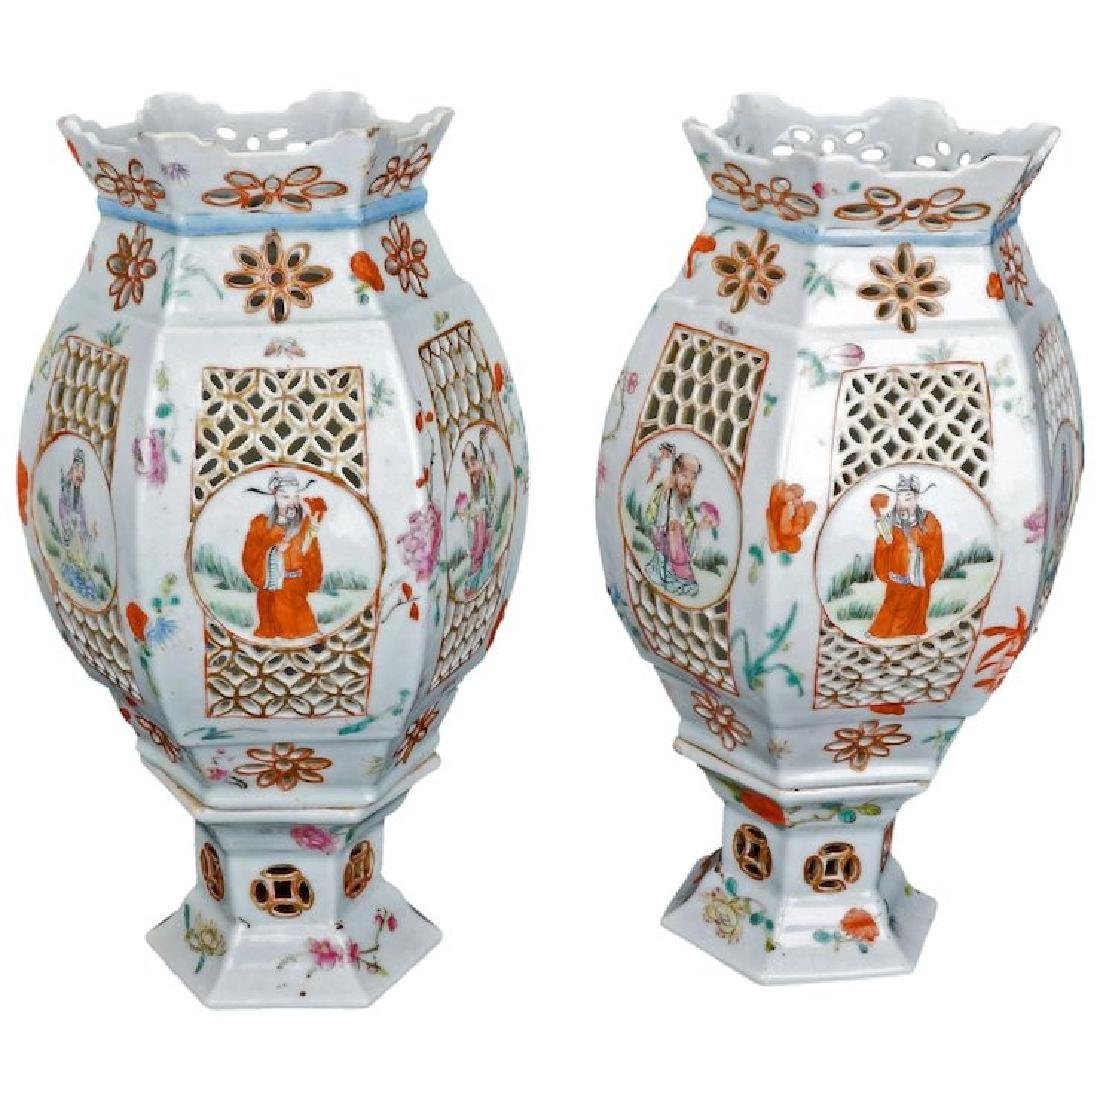 Matched pair of Chinese Qing porcelain wedding lamps